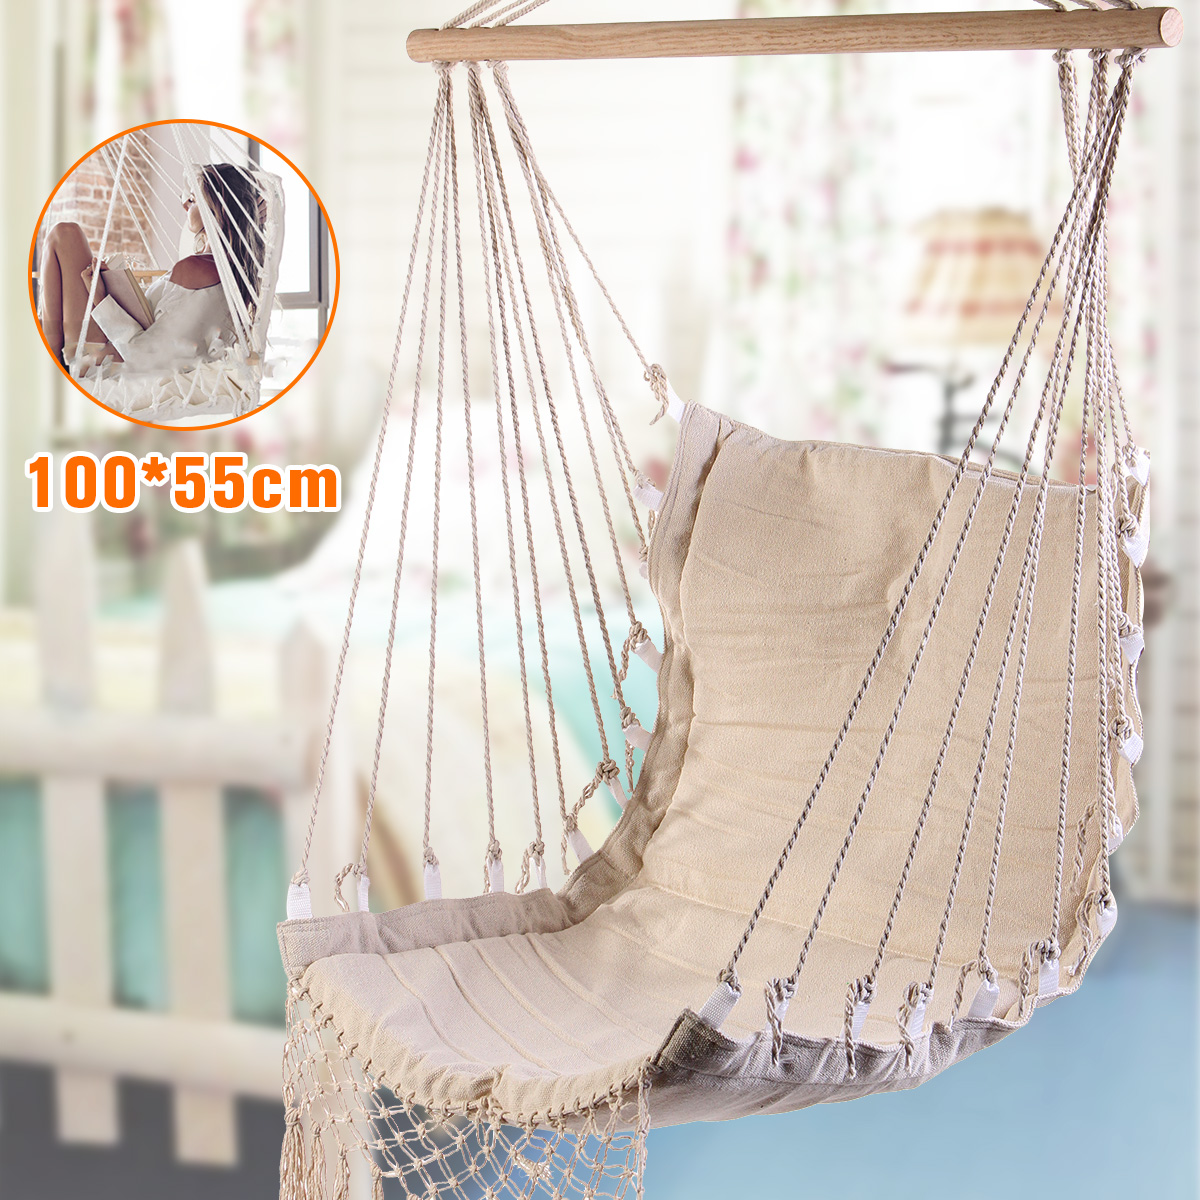 nordic-style-white-hammock-outdoor-indoor-garden-dormitory-bedroom-hanging-chair-for-child-adult-swinging-single-safety-hammock